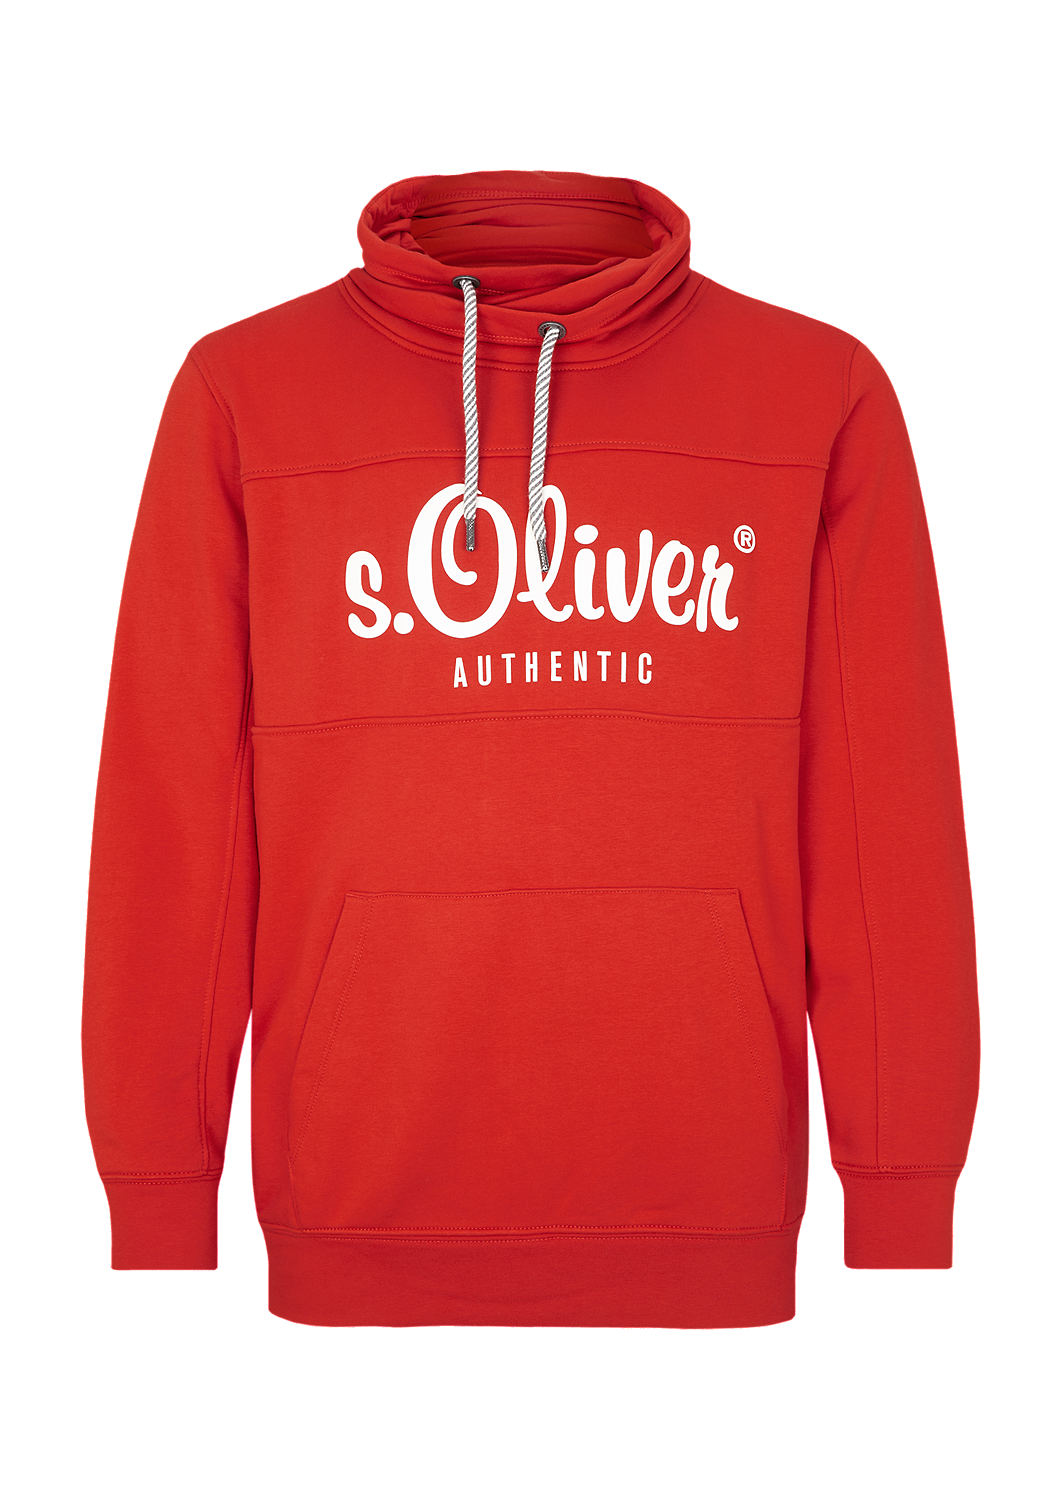 new high quality shop outlet Buy s.Oliver AUTHENTIC sweatshirt   s.Oliver shop